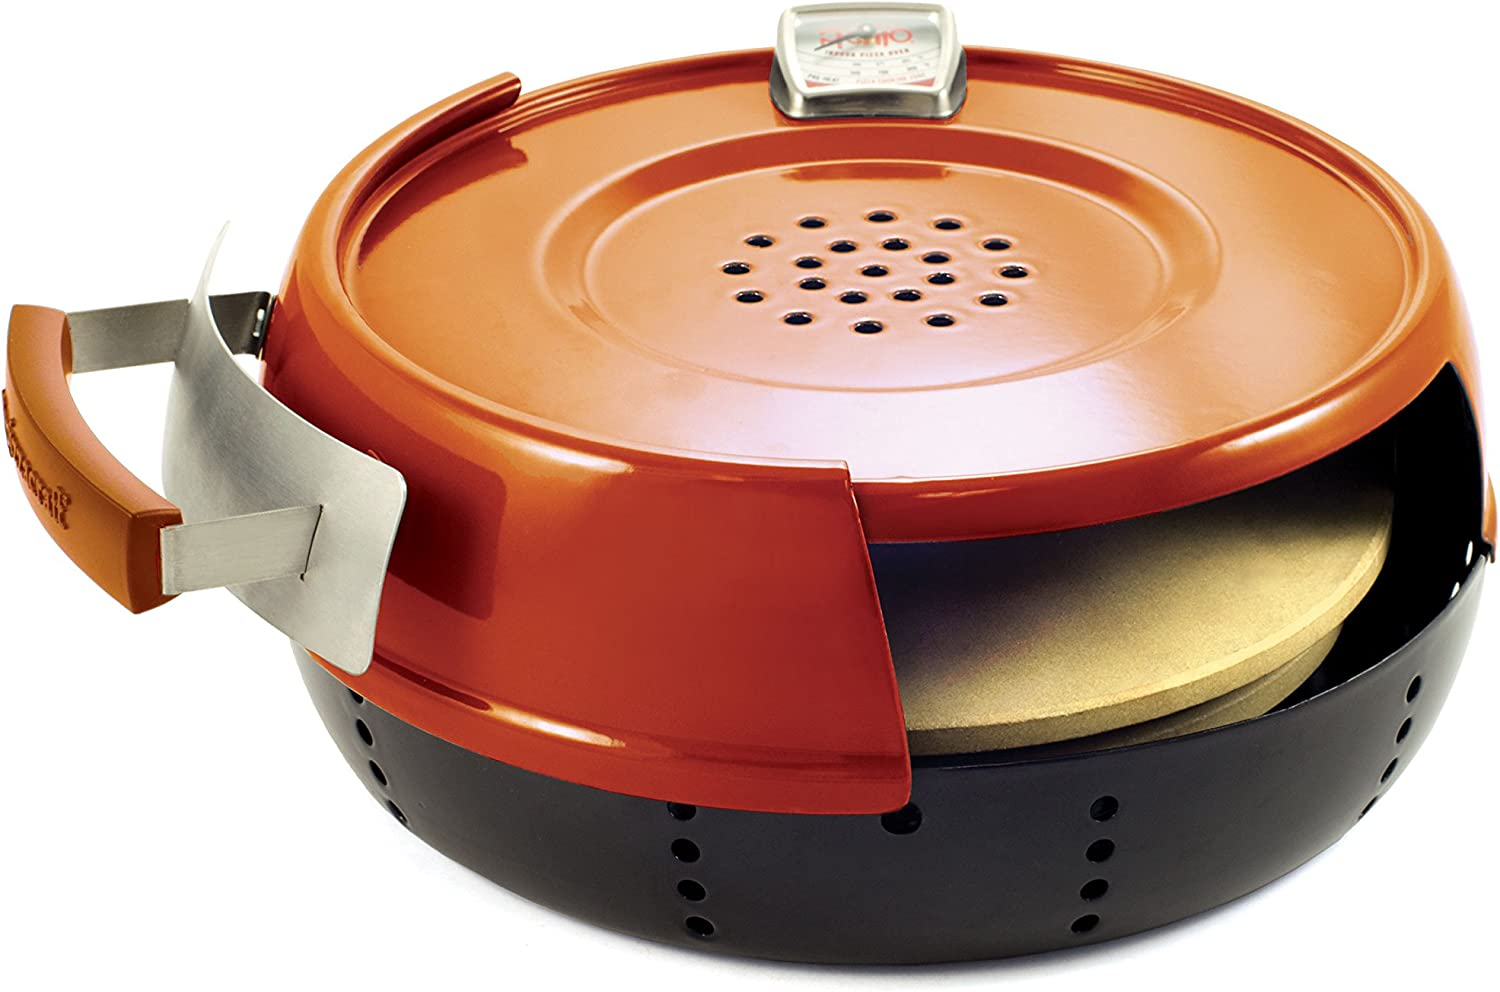 Top 10 Best Home Pizza Ovens Reviews in 2020 4